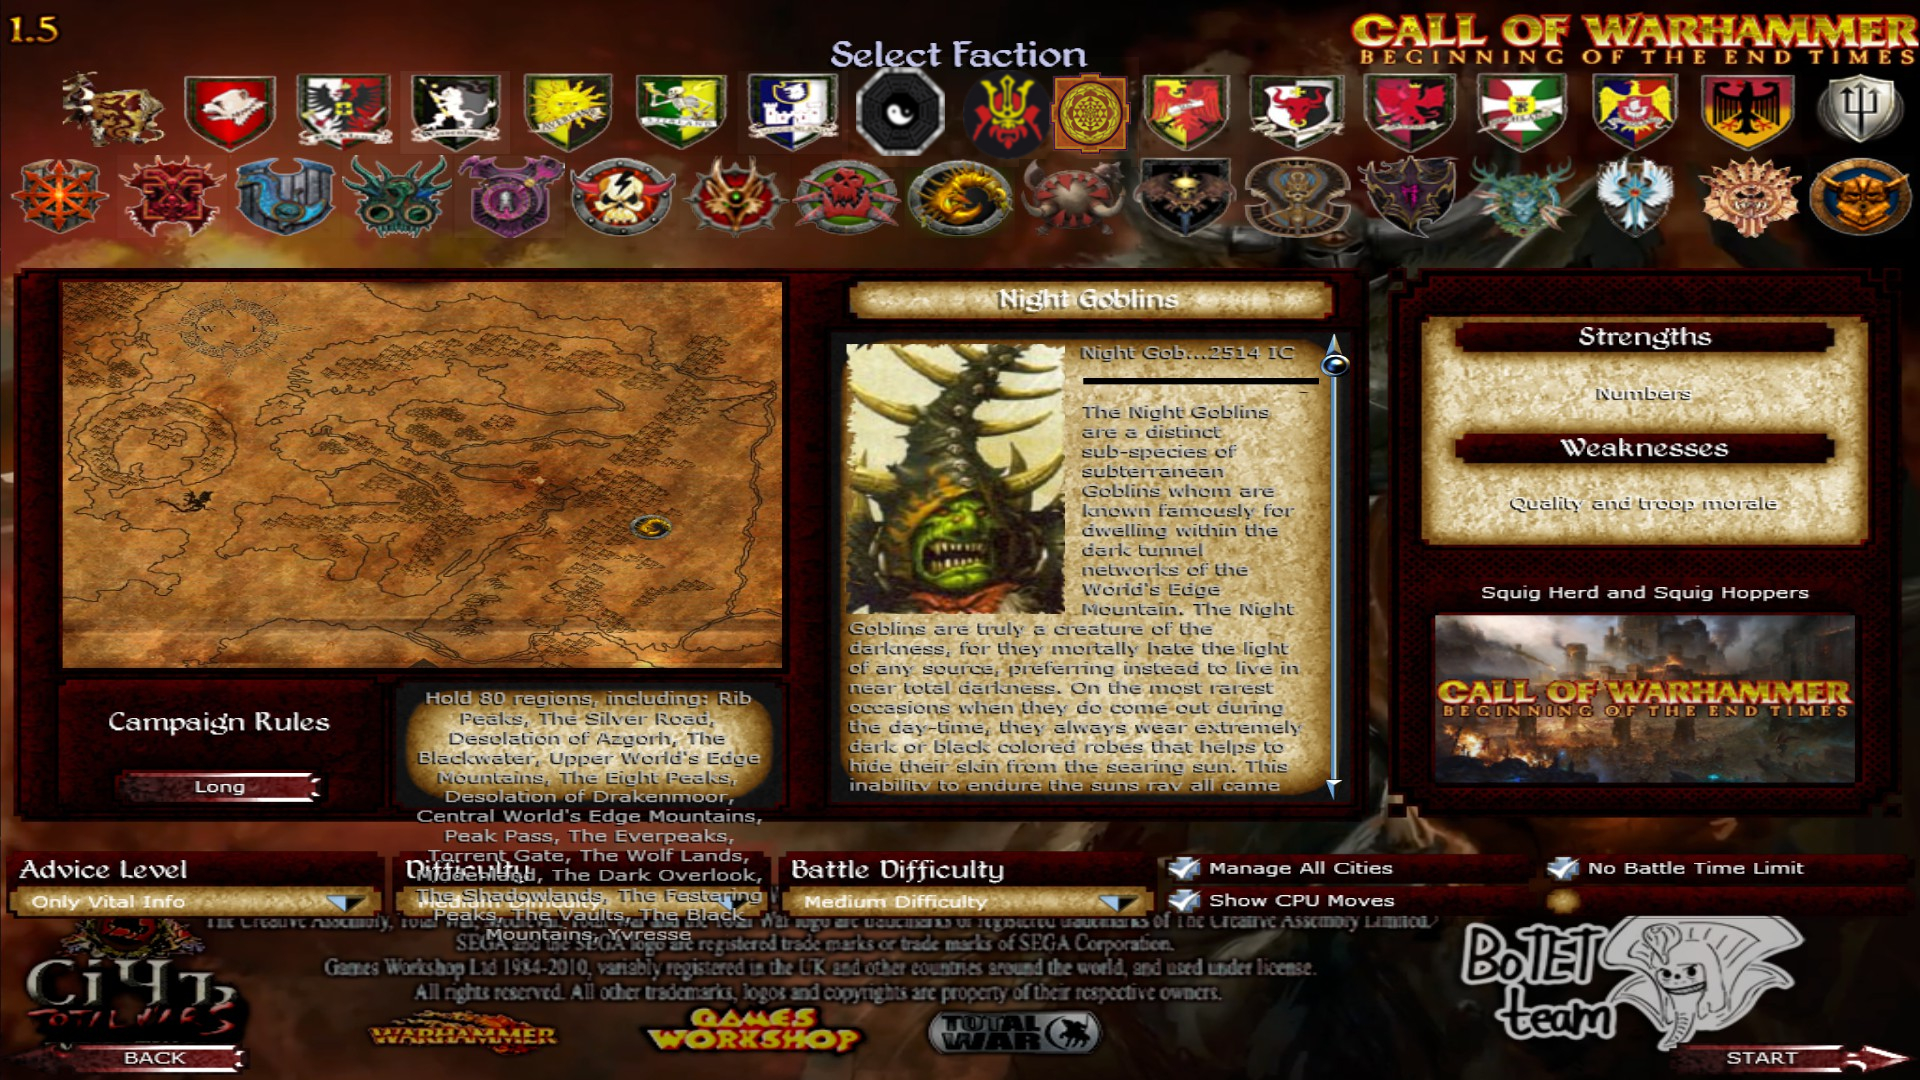 Faction Selection screen image - Call of Warhammer: Beginning of The